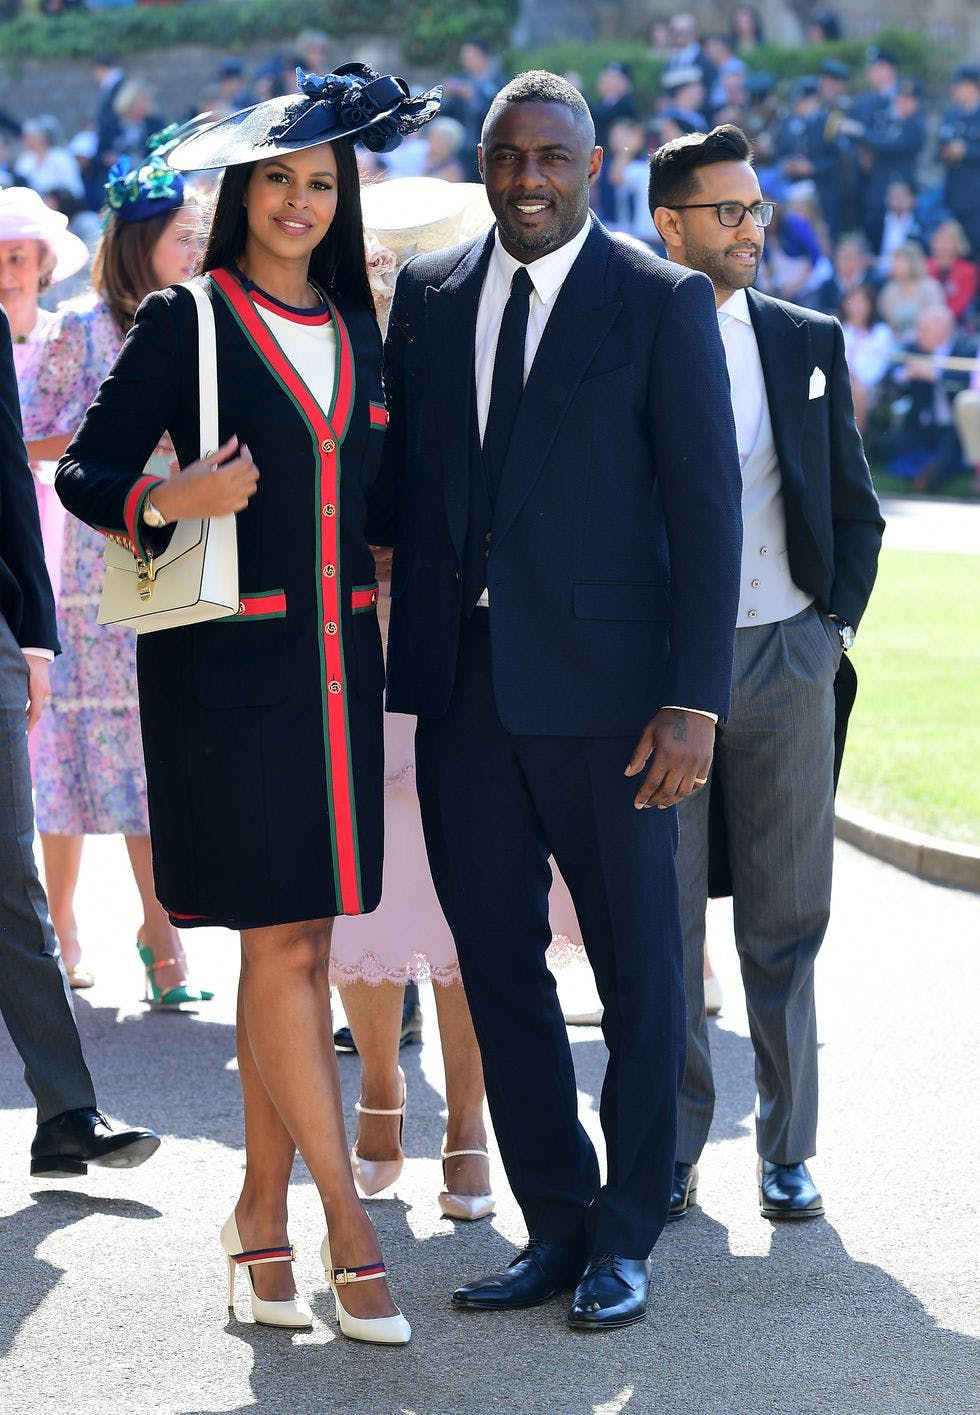 sabrina dhowre in gucci at the royal wedding